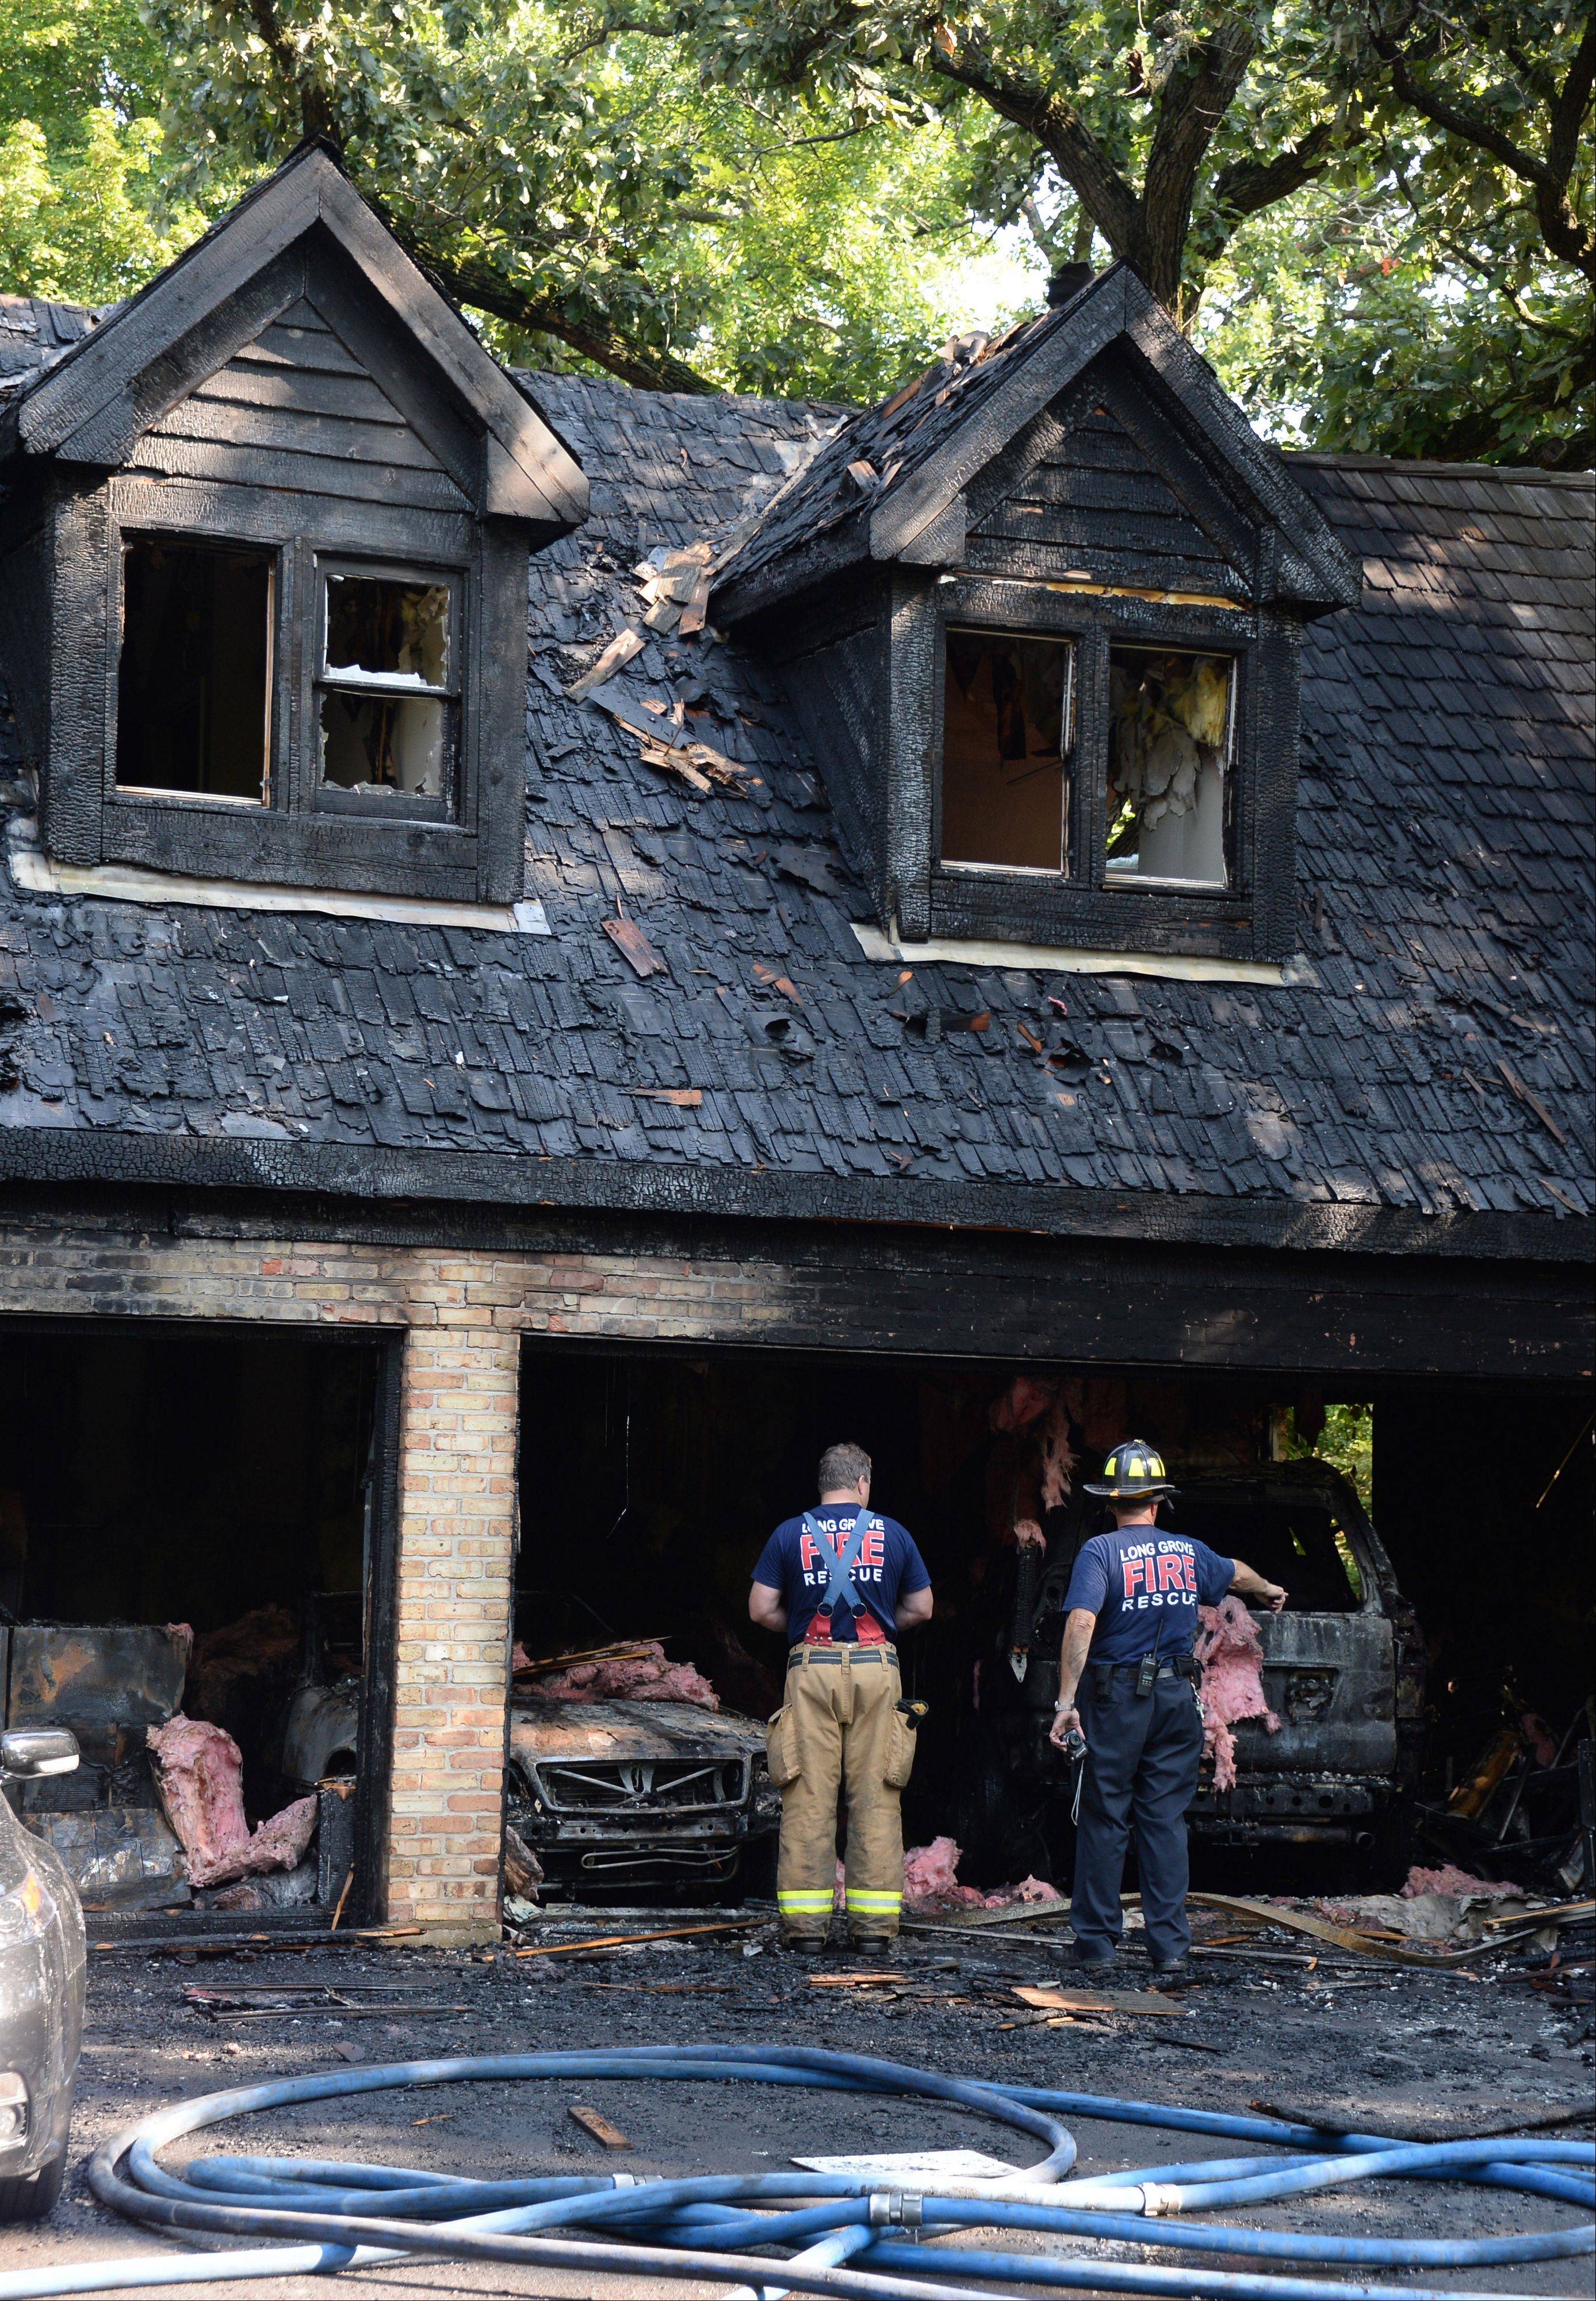 A Monday morning house fire on the 3200 block of Victorian Lane in Long Grove caused an estimated $275,000 in damage to the house and three cars, officials said.